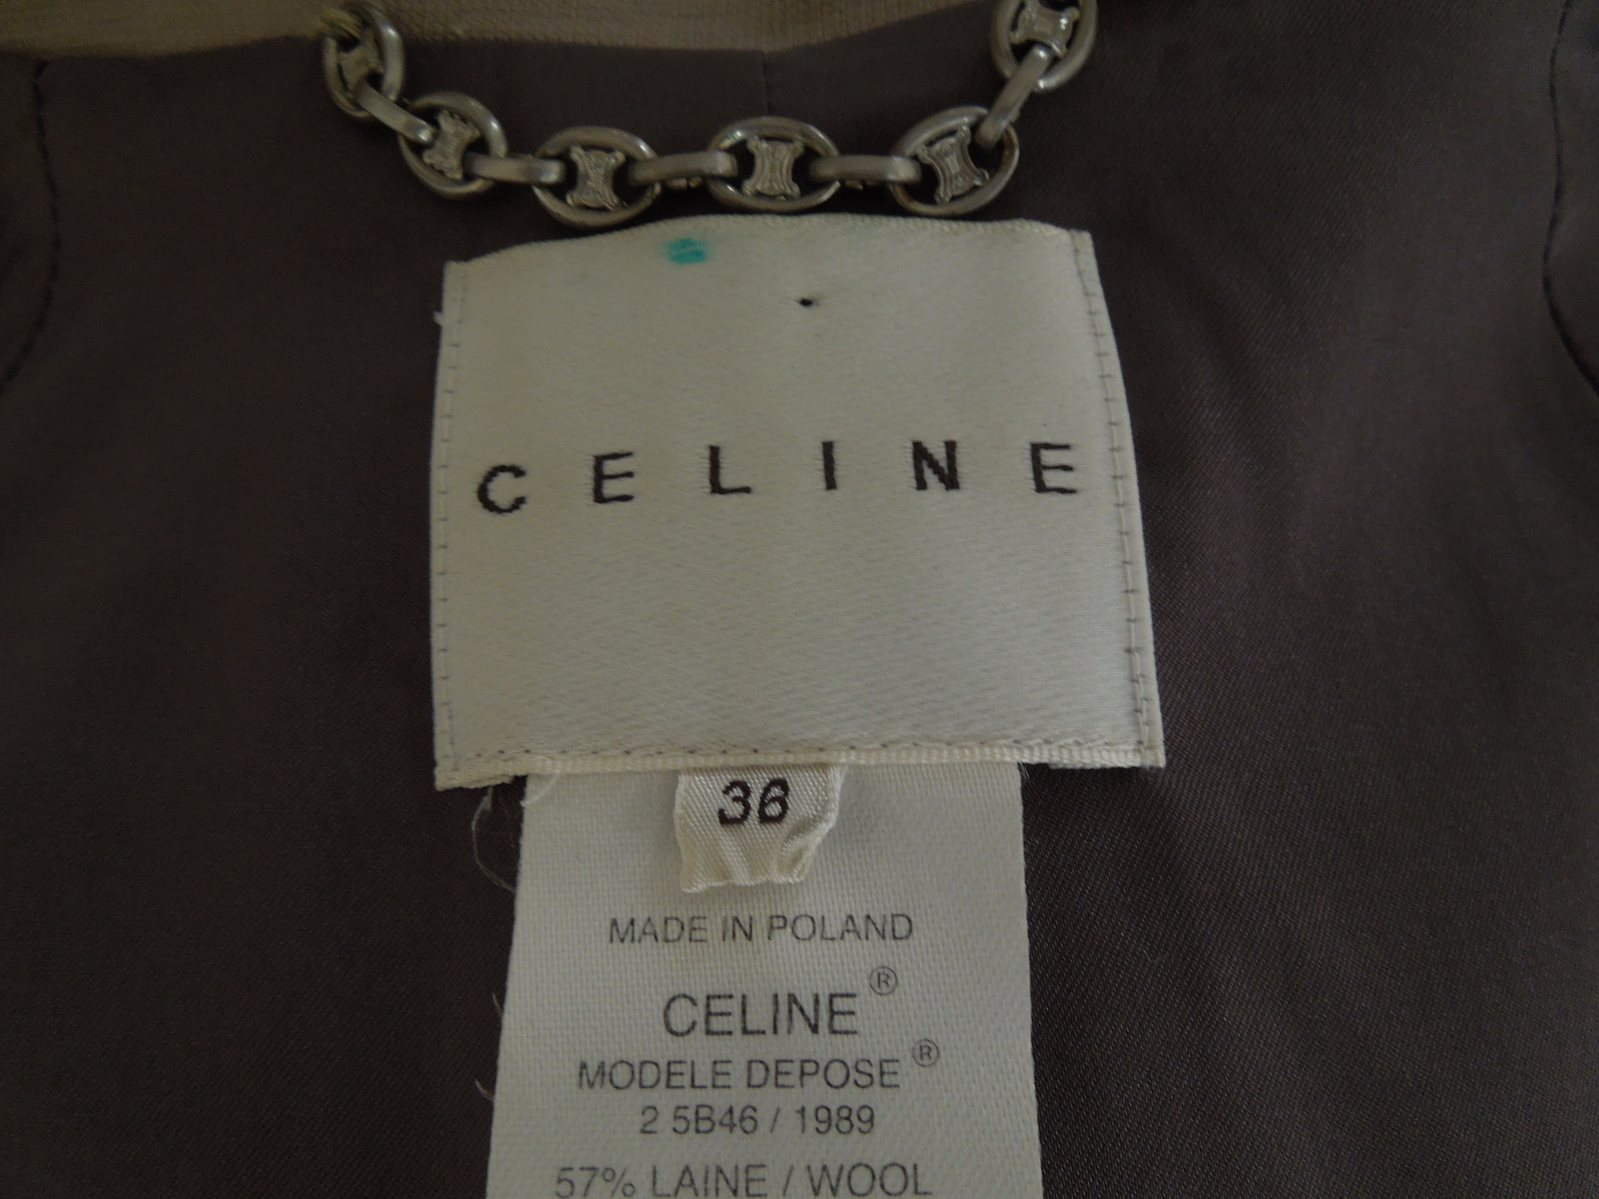 Celine - The Loft, London